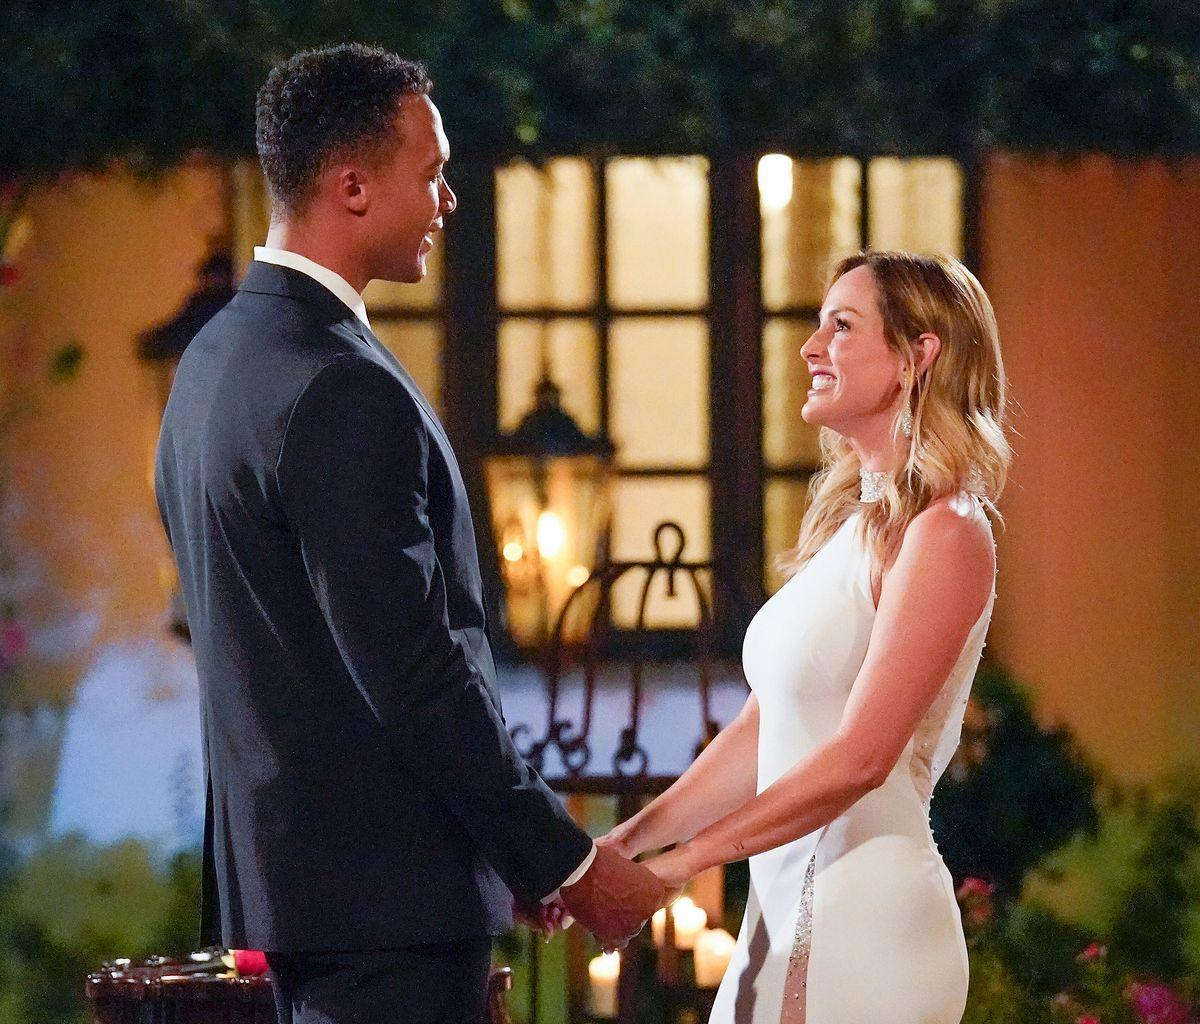 Clare Crawley Explains When She Knew Dale Moss Was The One Which Led Her To Leave The Bachelorette Early